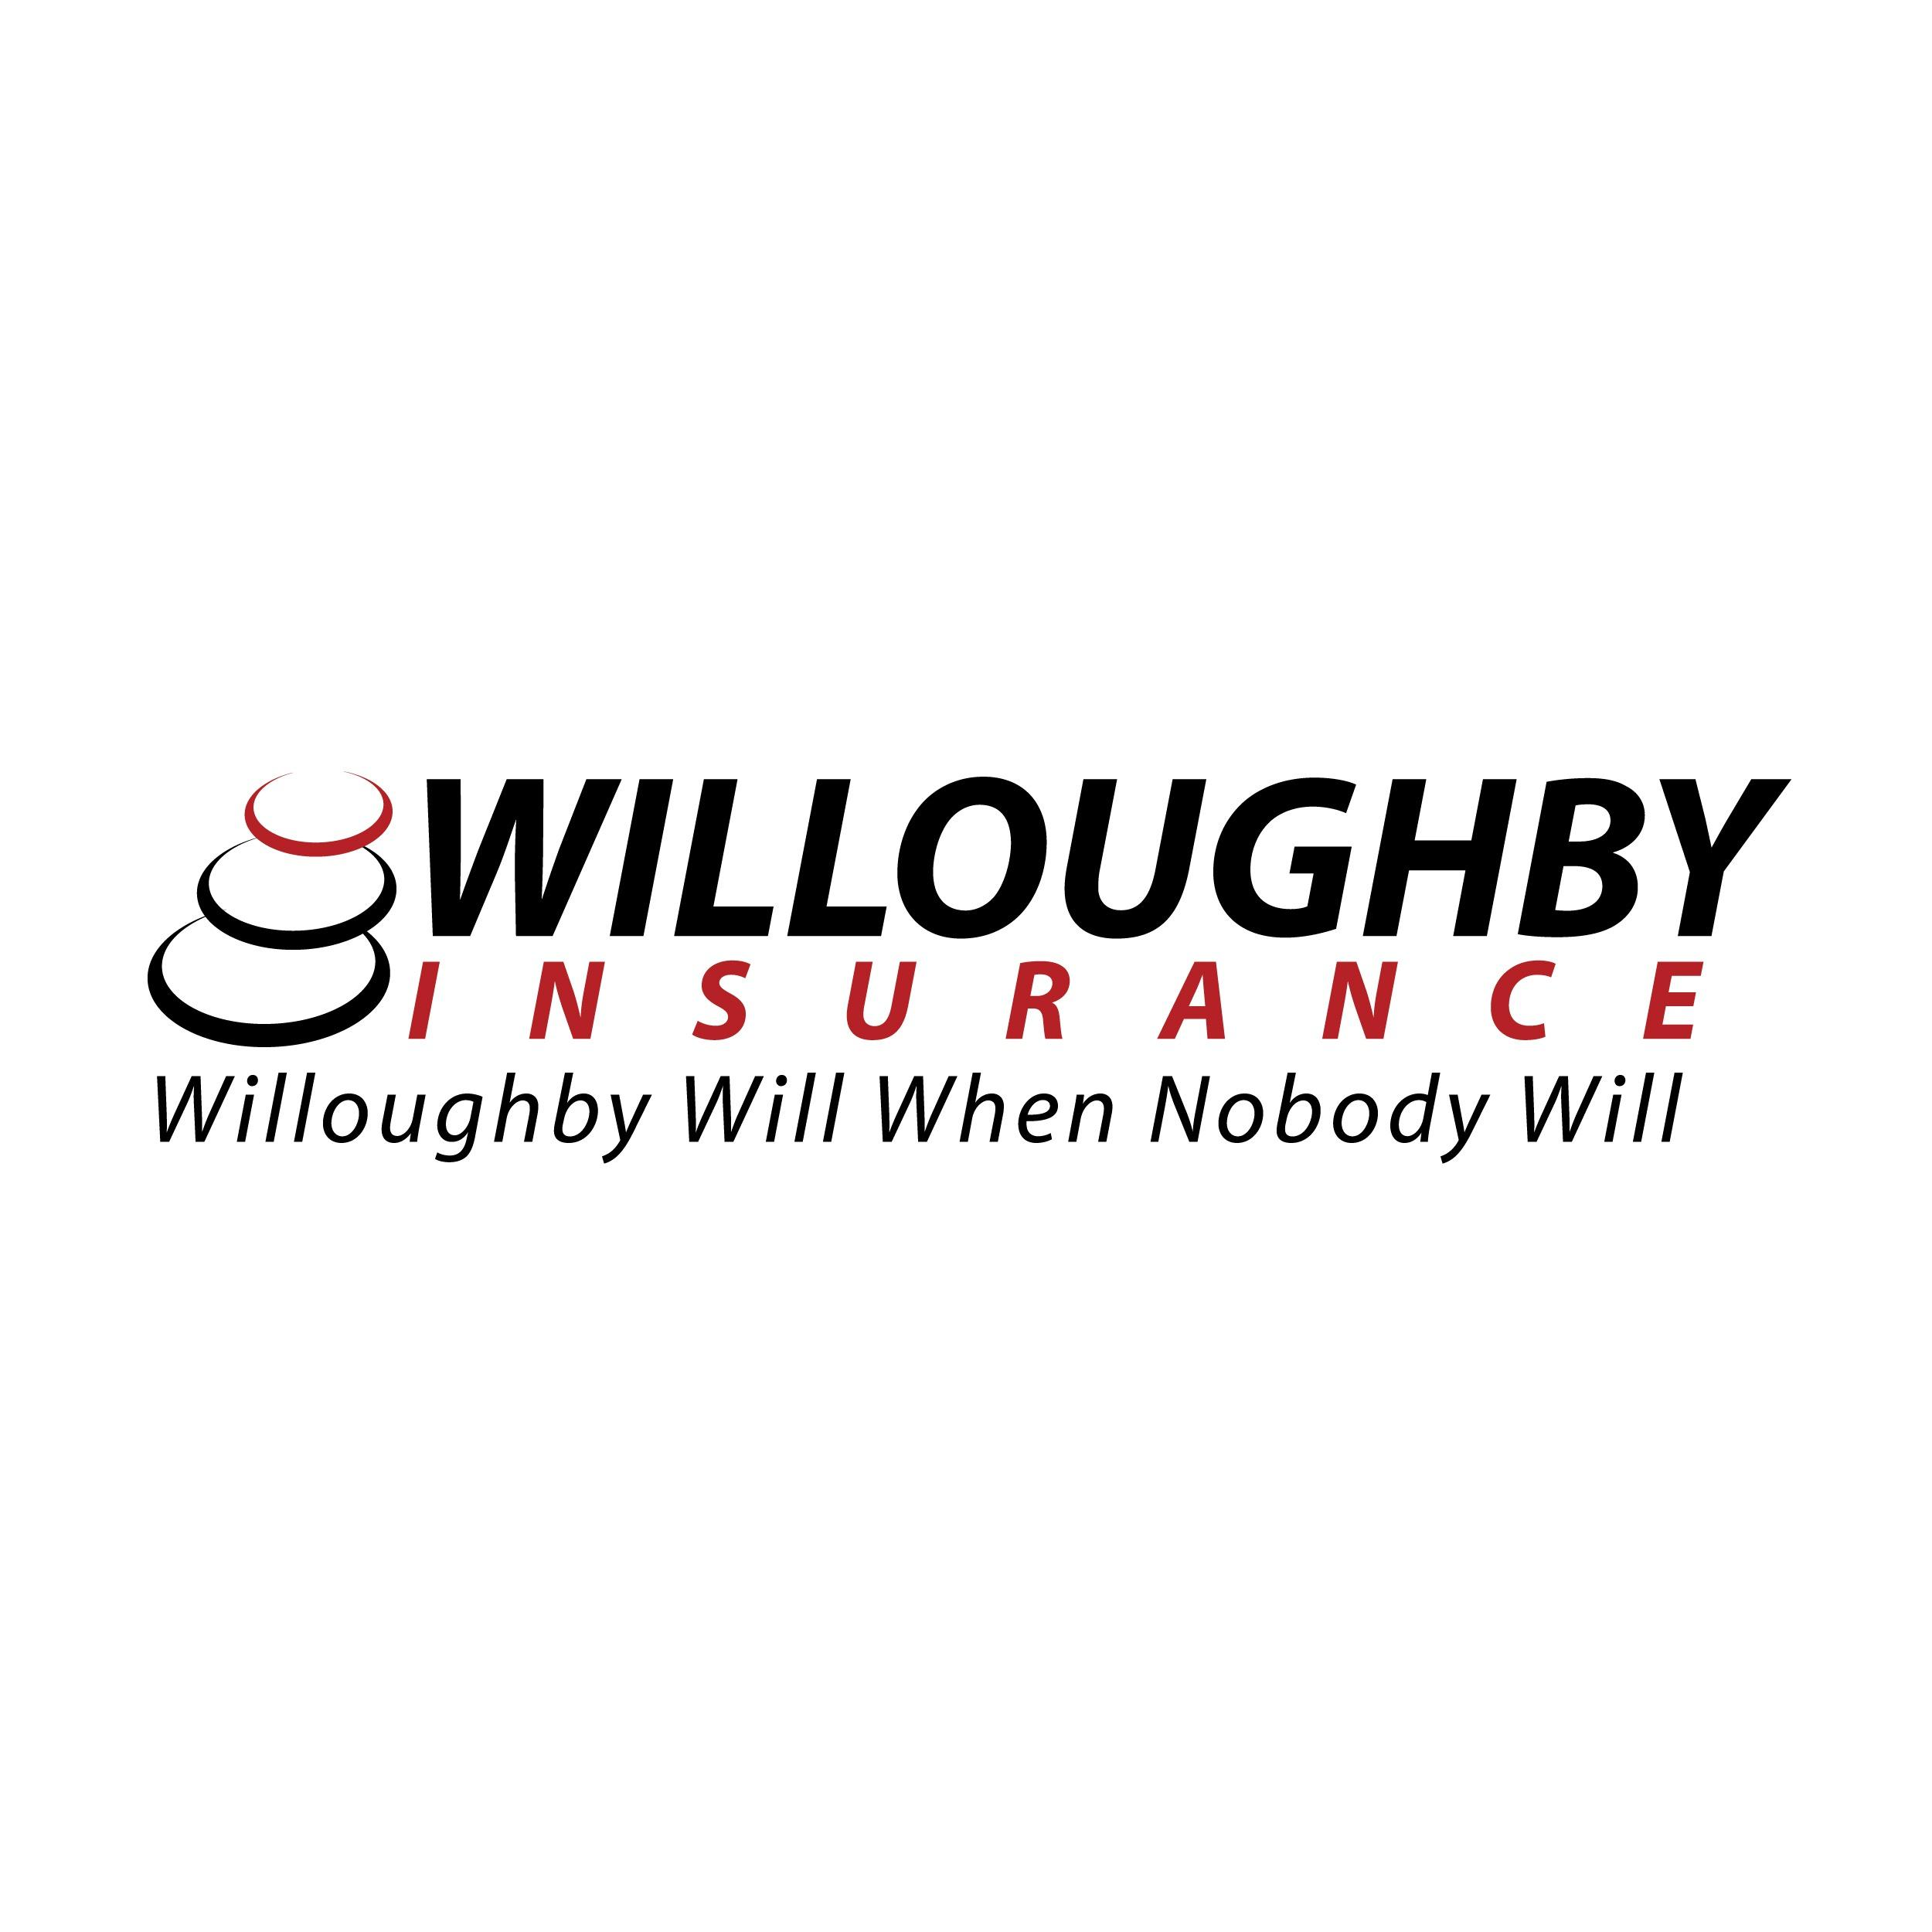 Willoughby Insurance